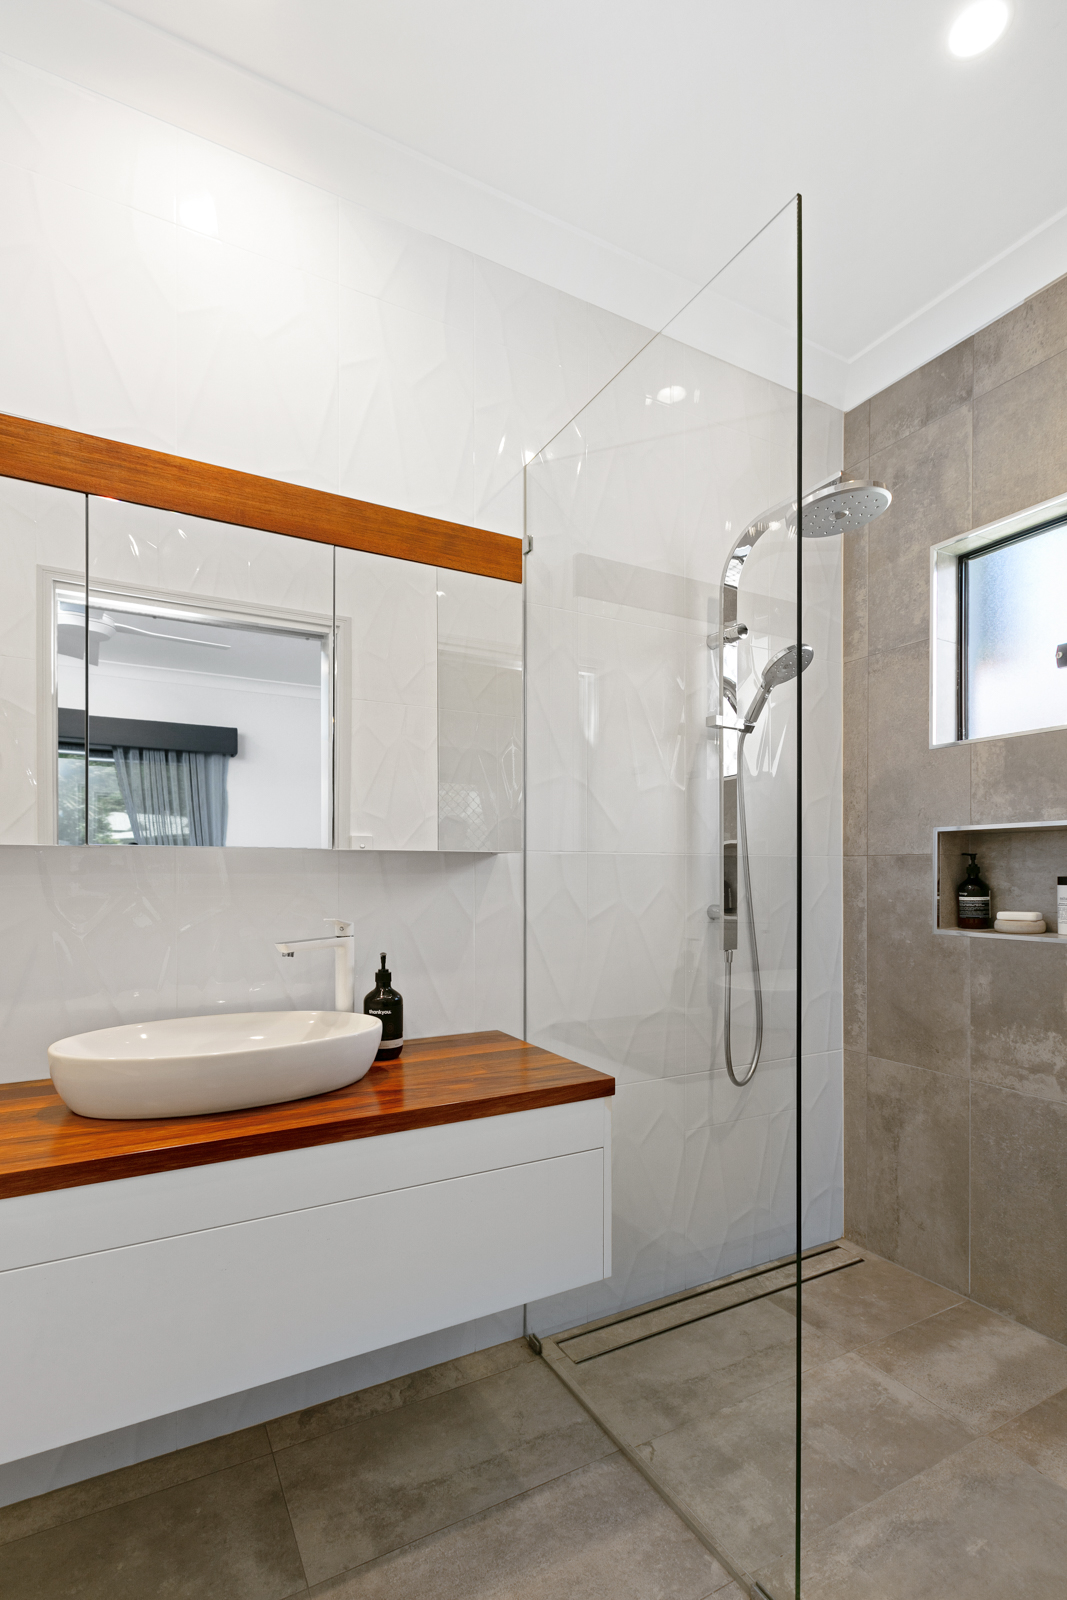 Renovated bathroom including wall-to-ceiling tiles, shower niche & timber floating vanity.